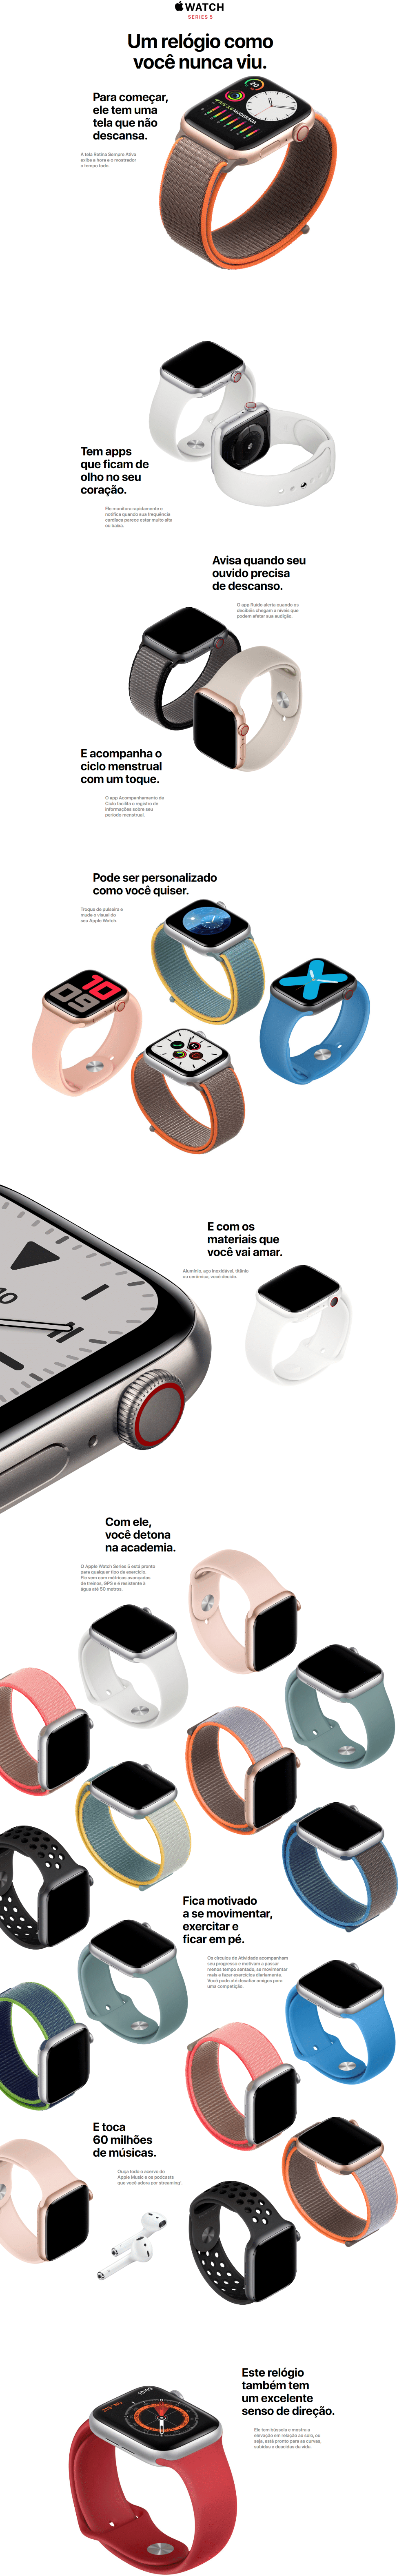 apple watch serie 5 novo 44 mm prata